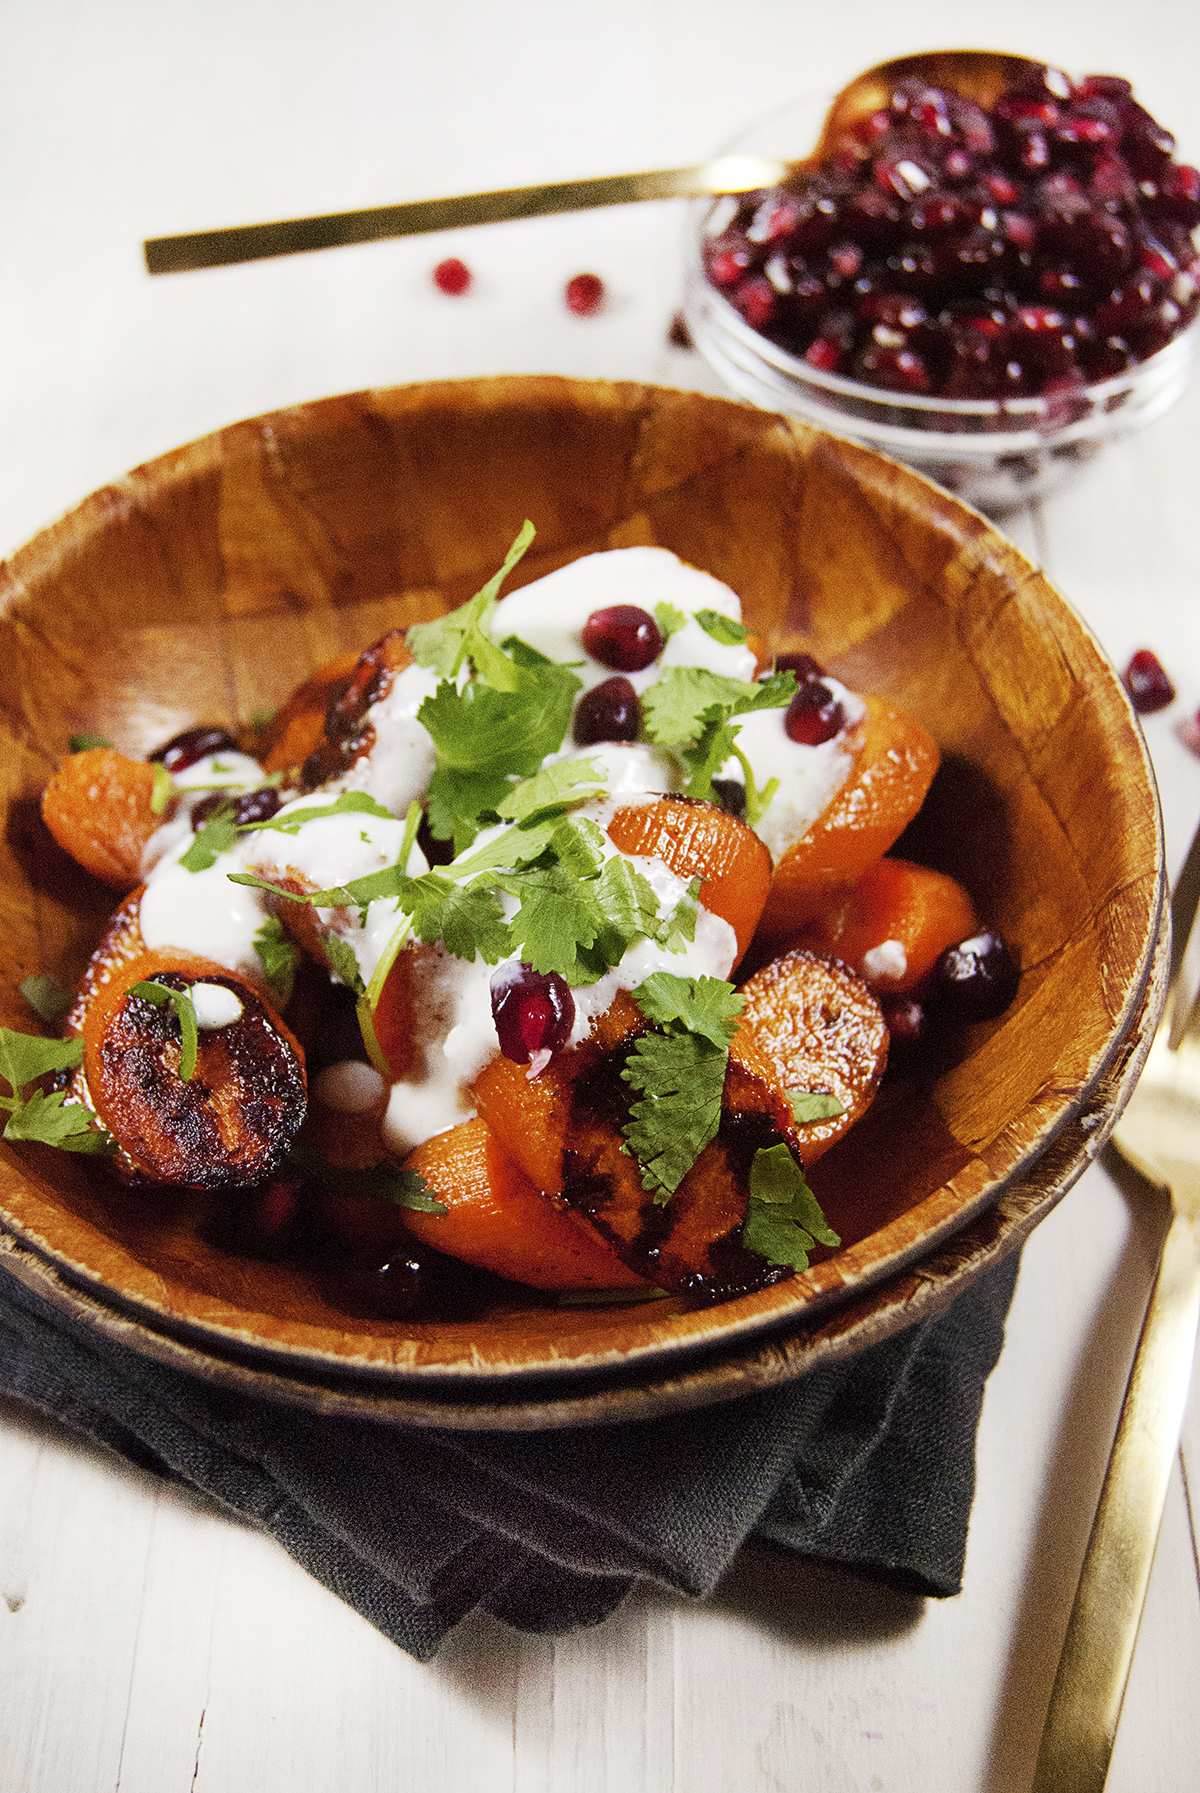 These crunchy roasted carrots are paired with a light cotija cream, fresh cilantro and pomegranate seeds.